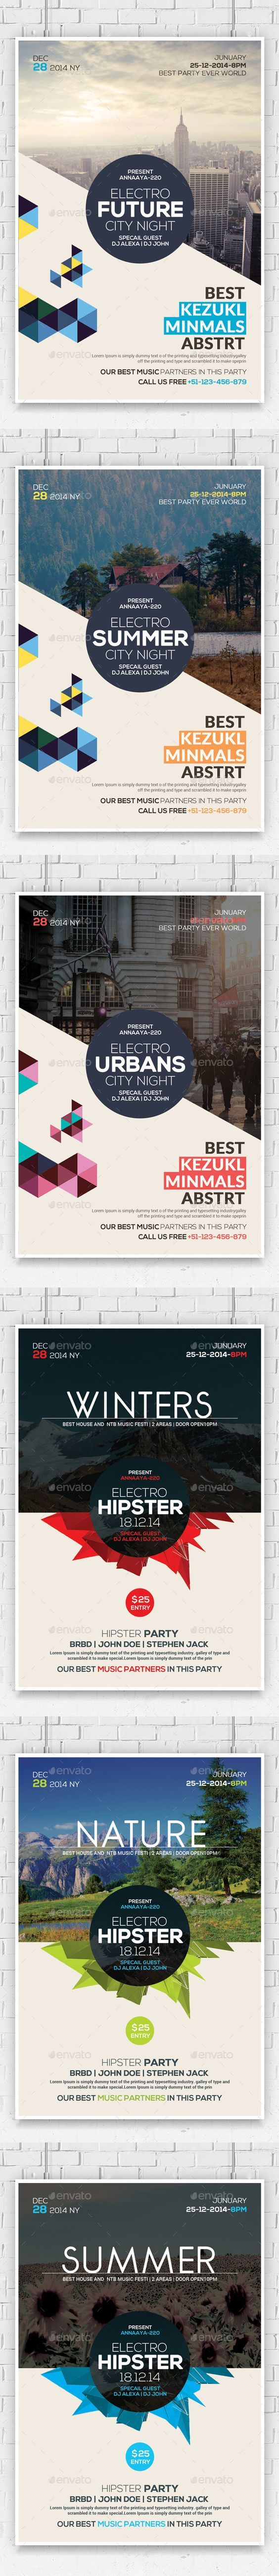 Hipster Party Flyers Bundle (CS, 4x6, abstract, album, clean, club, club flyer, design, electro, flyer, future, futuristic, geometric, geometric flyer, geometry, house, house flyer, minimal, minimal flyer, minimal party, minimalistic, modern, modern flyer, party flyer, poster, pure, style, stylish, techno, triangle, white, white flyer):